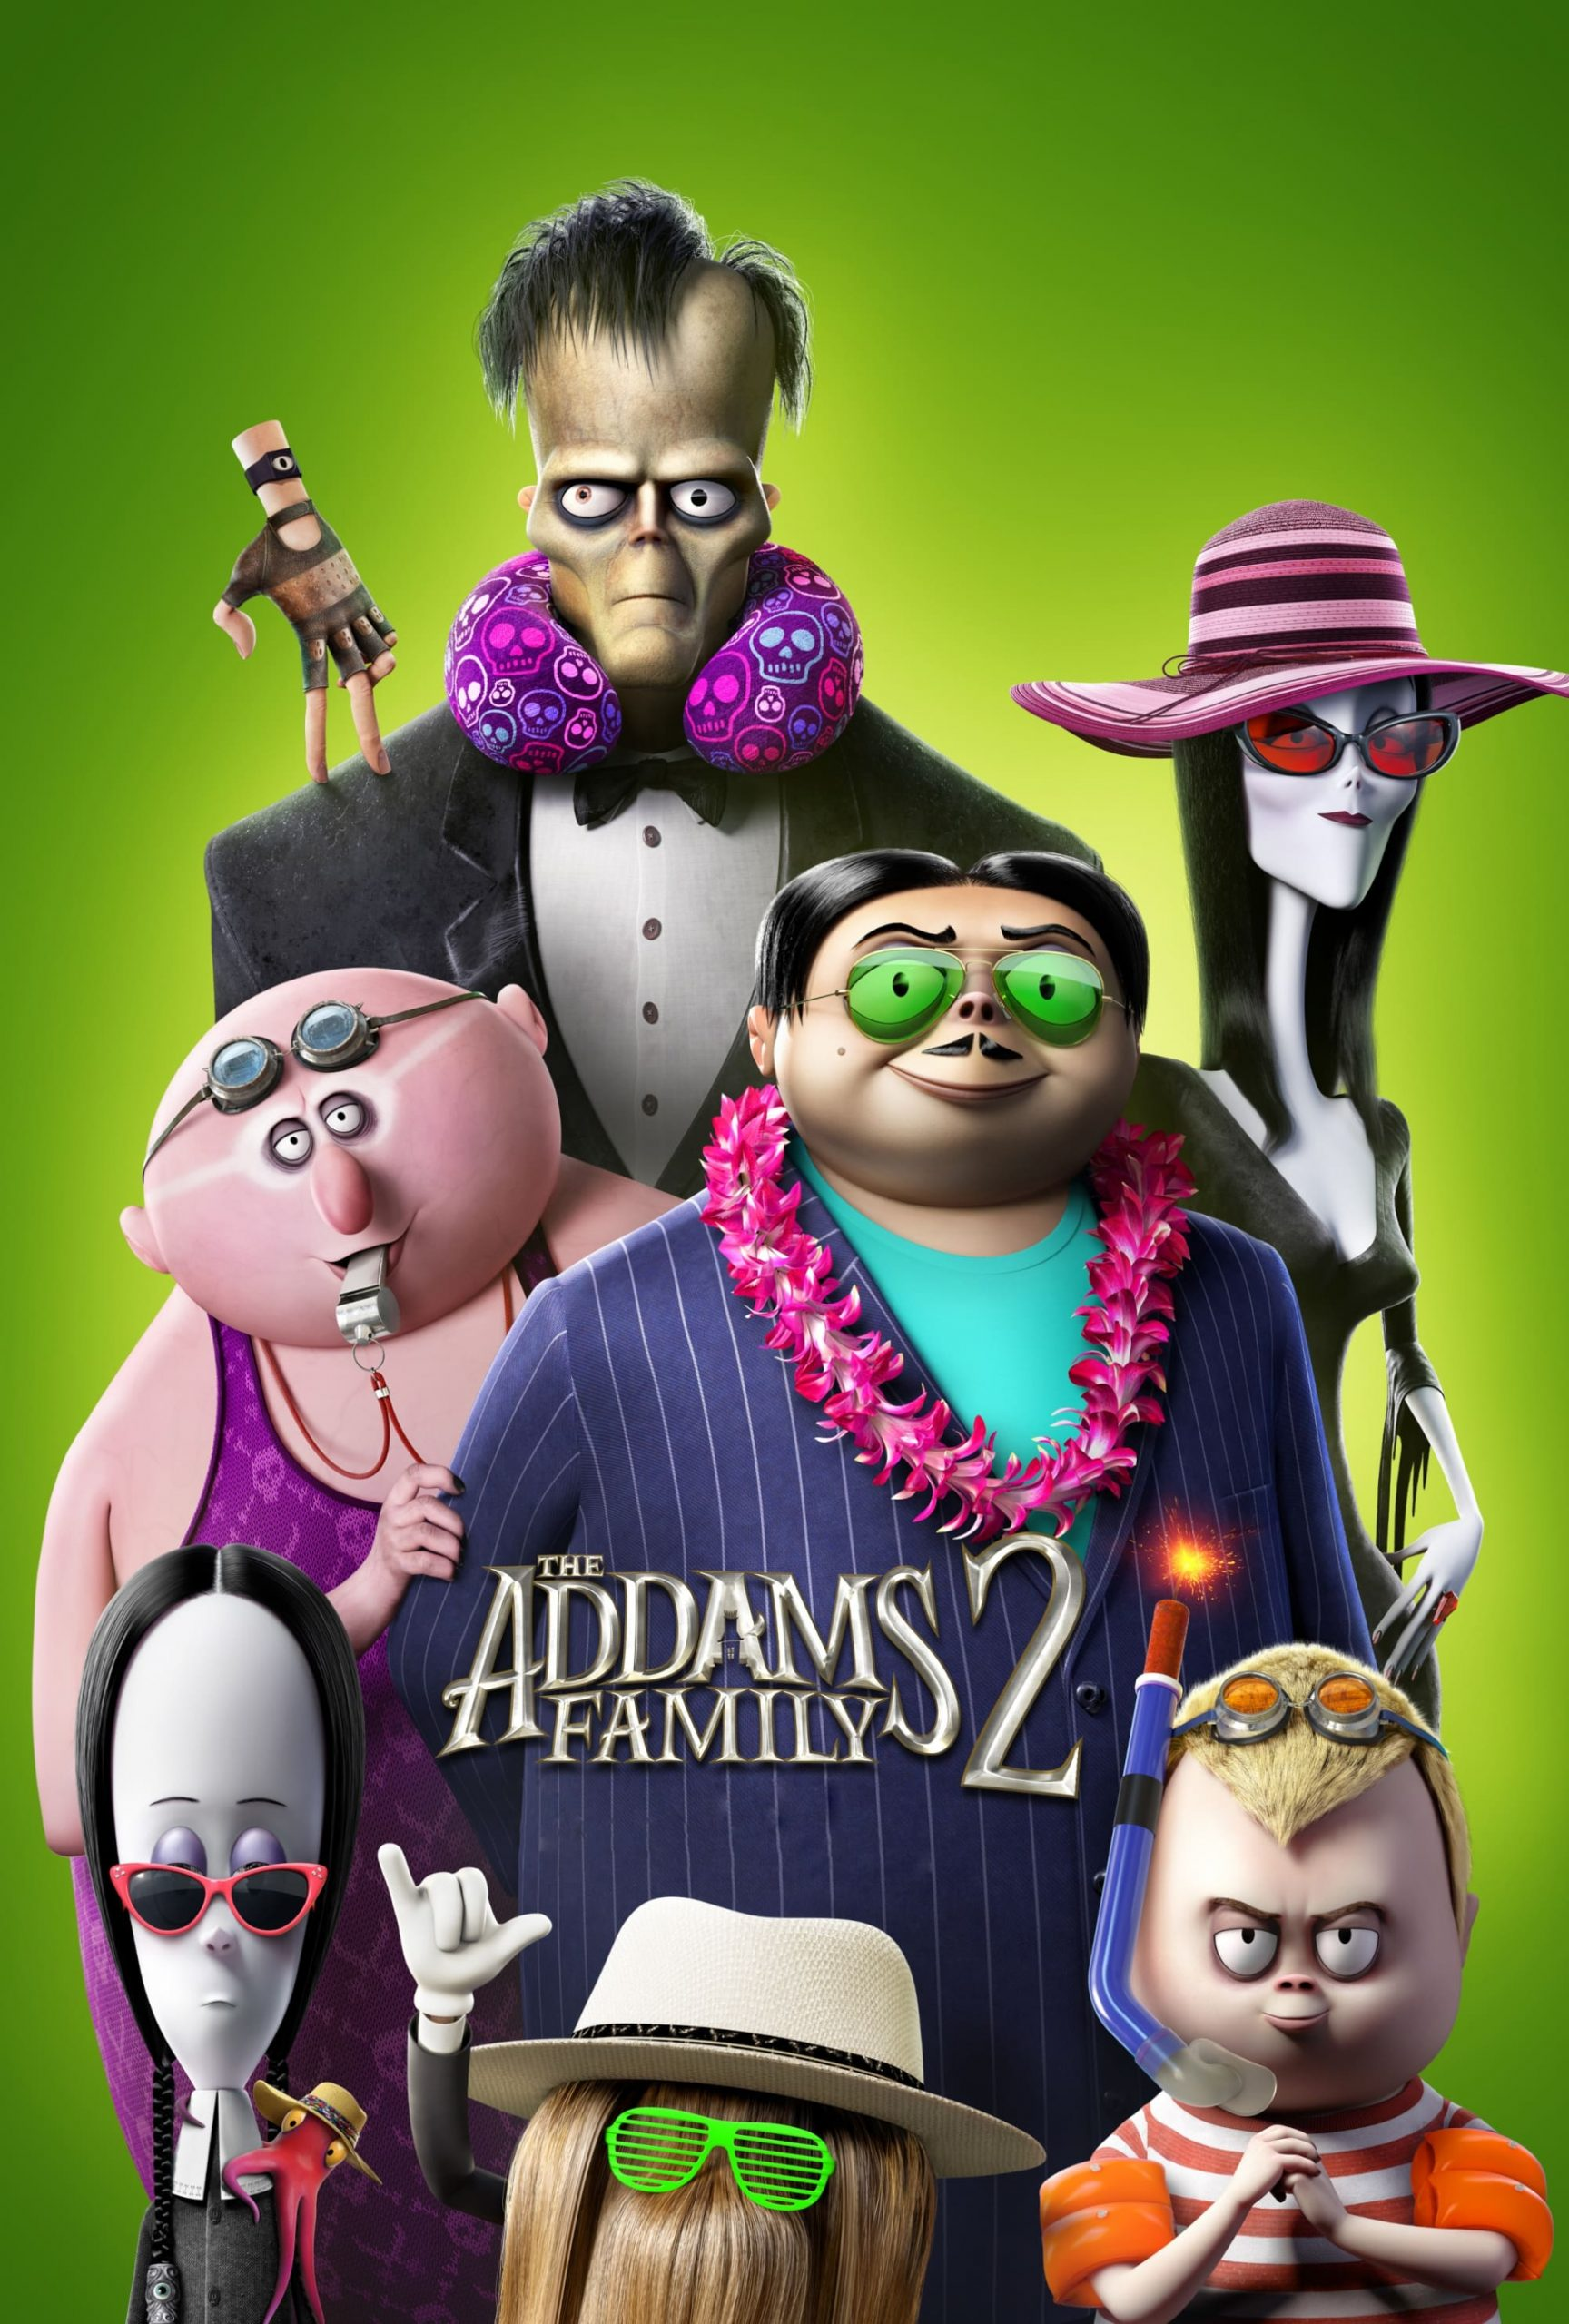 Poster for The Addams Family 2